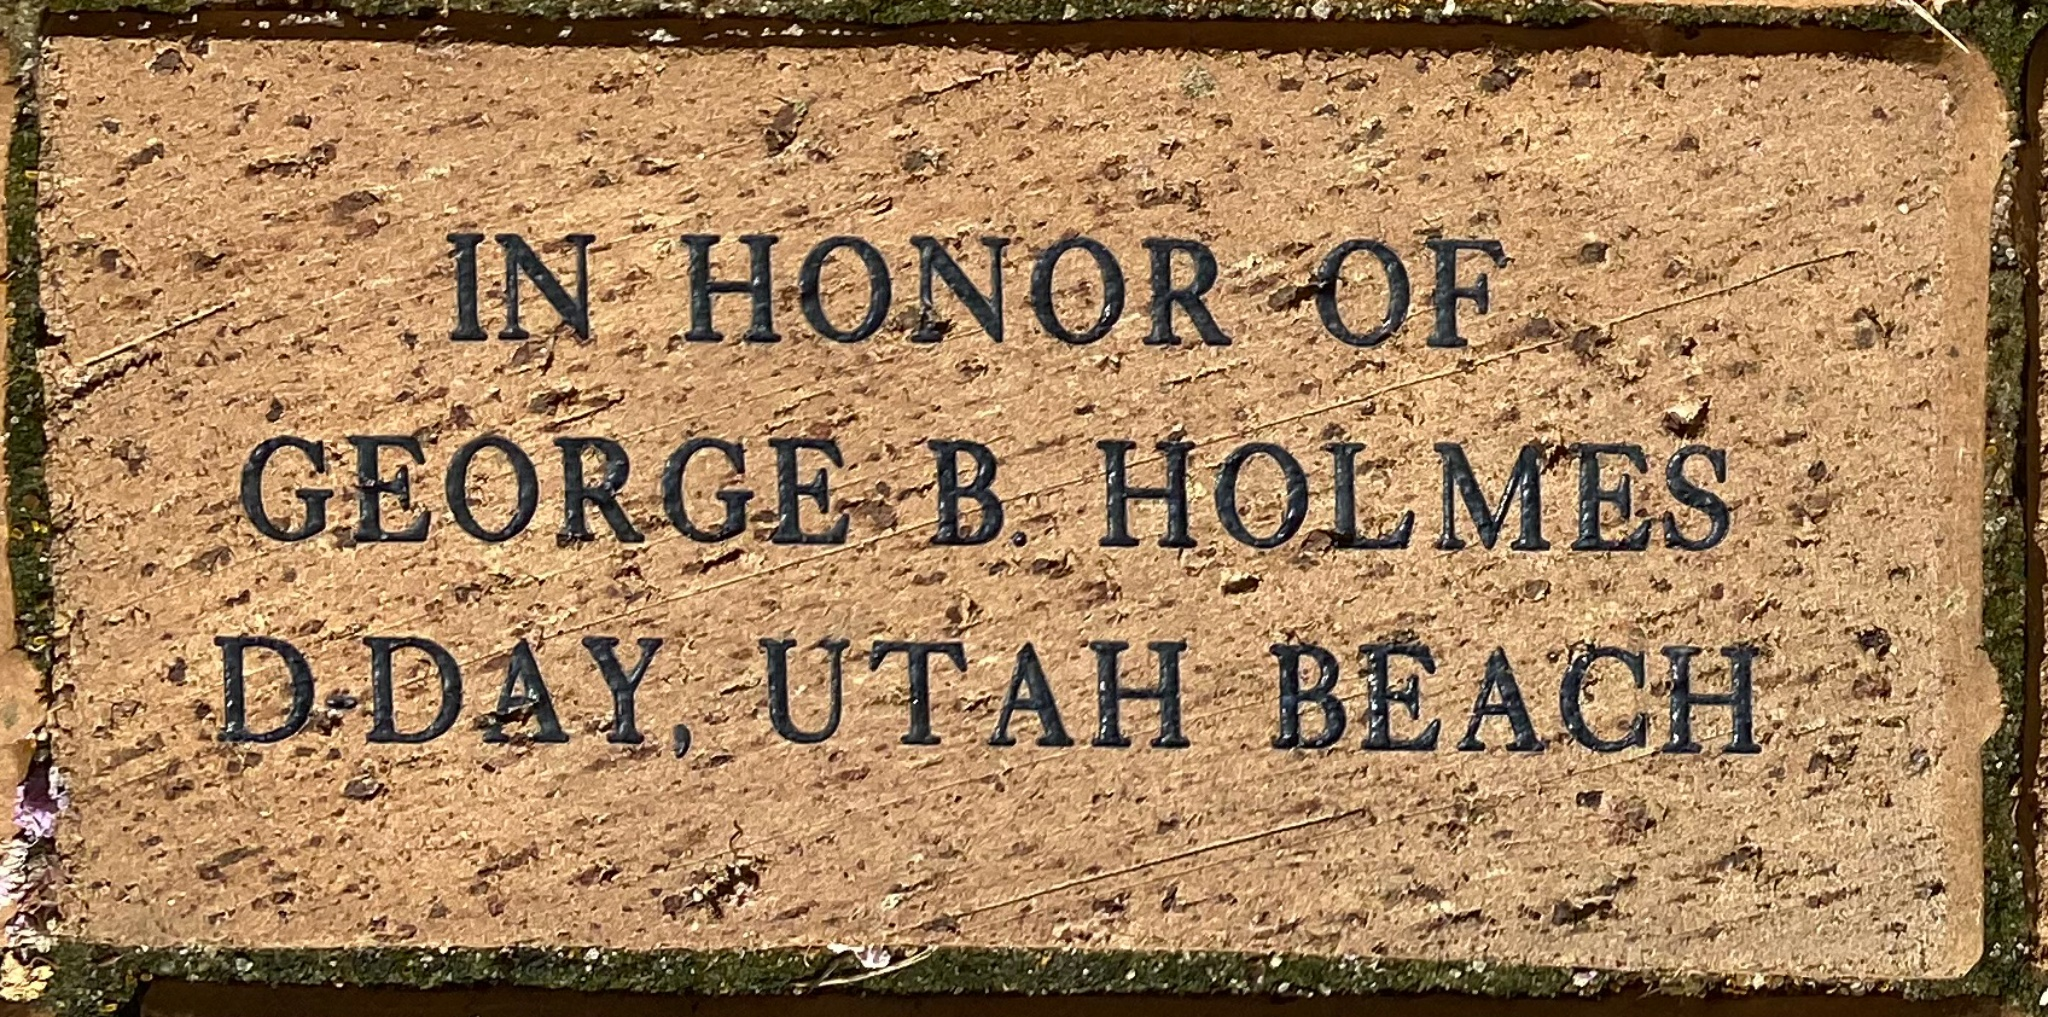 IN HONOR OF GEORGE B. HOLMES D-DAY, UTAH BEACH